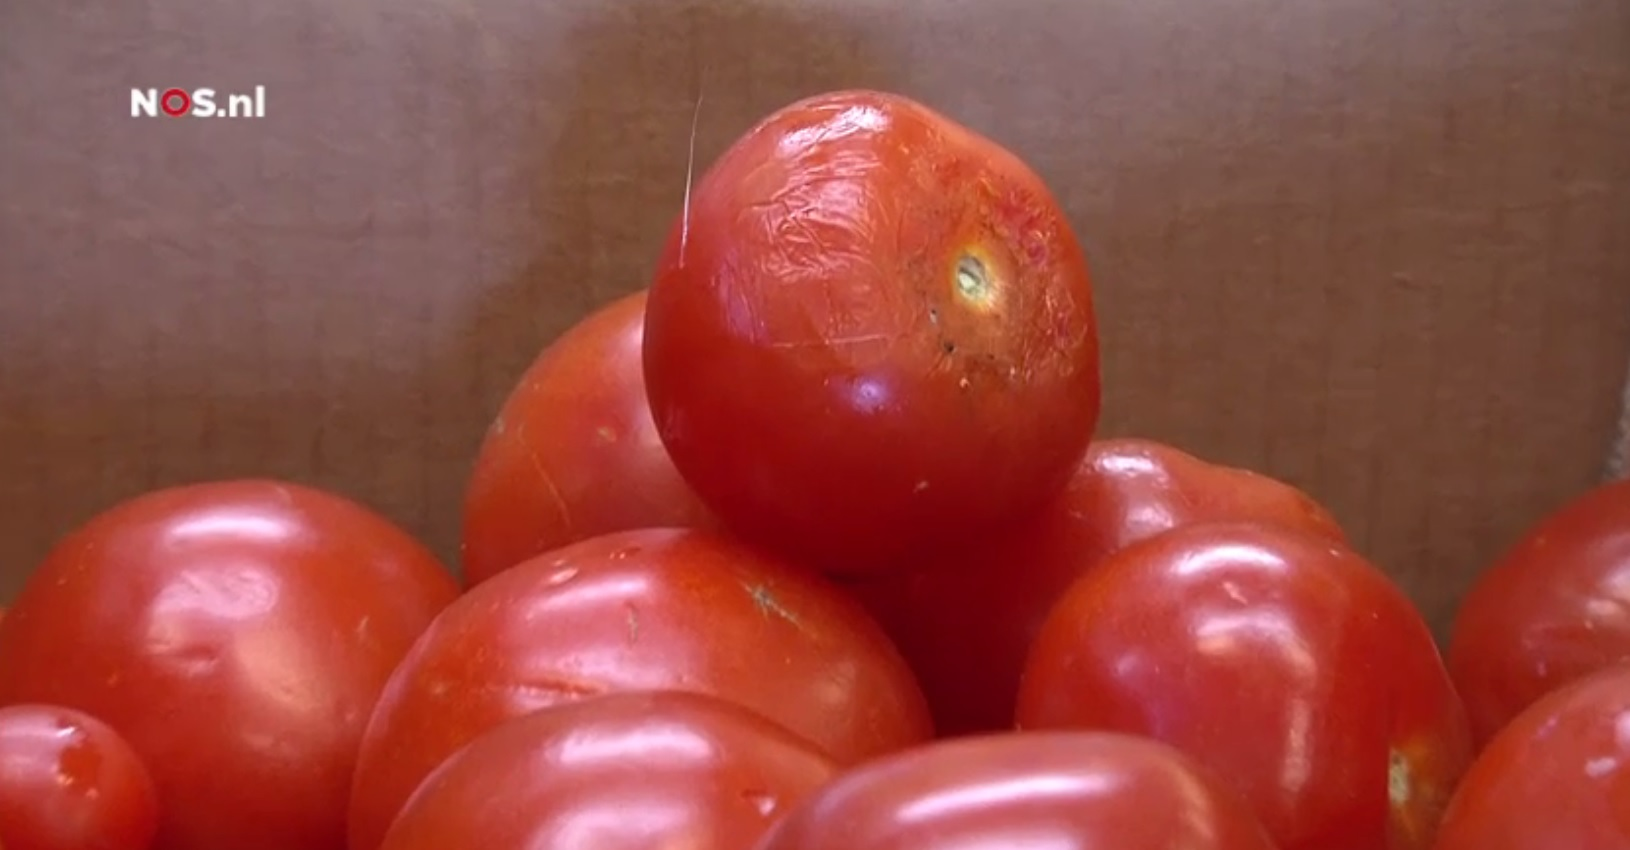 Tomaten. Foto: still uit NOS video